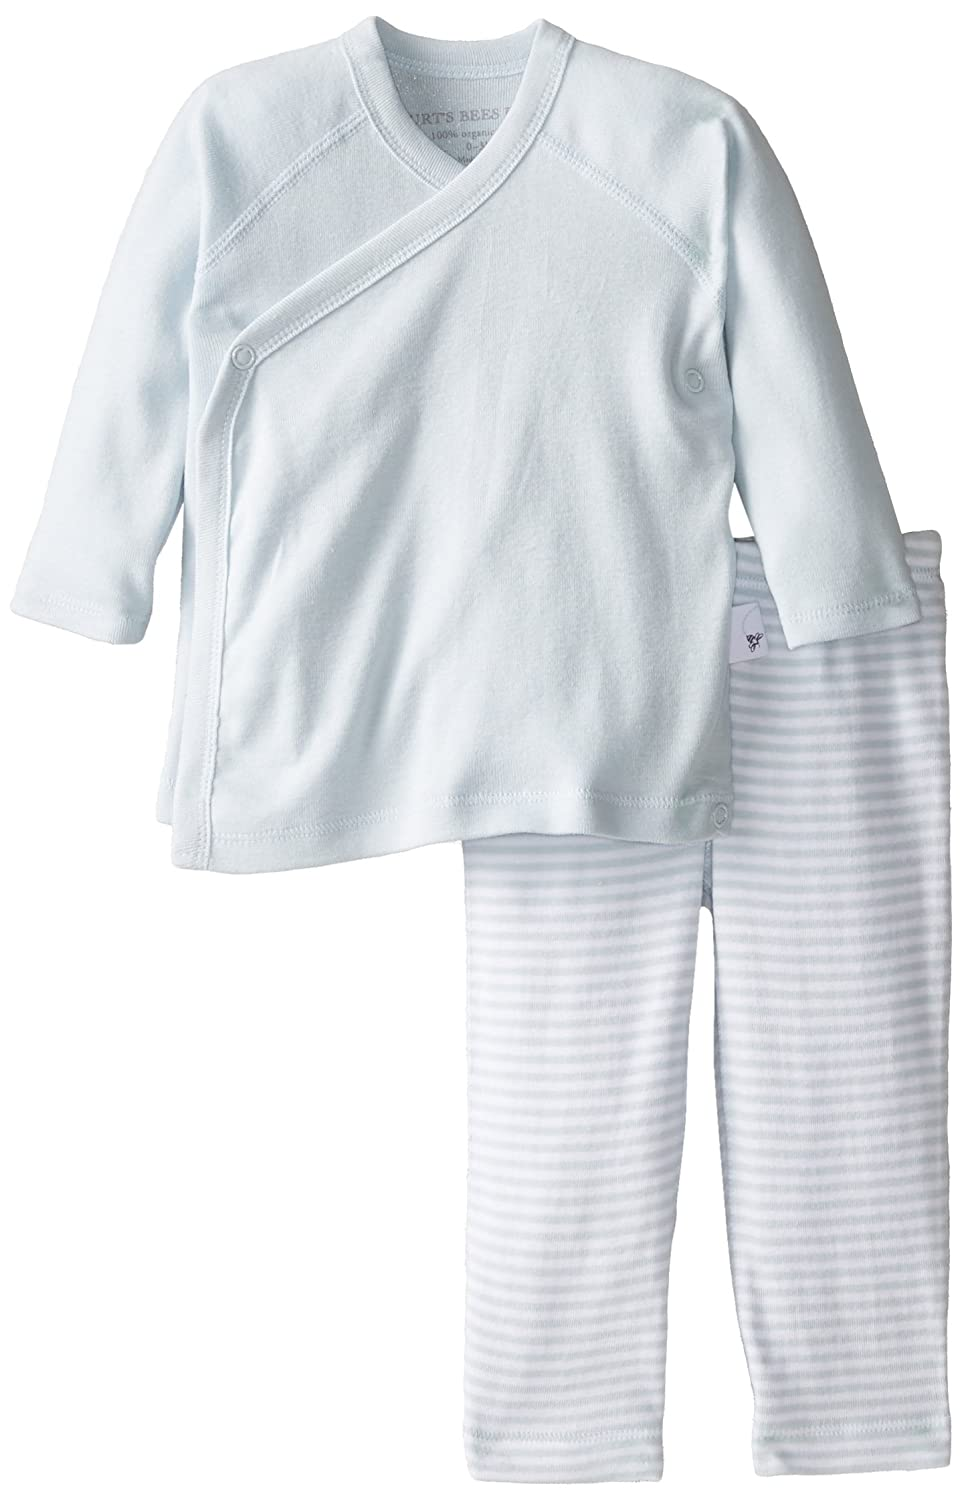 Burt's Bees Baby Essentials Solid Kimono Top + Honey Print Footless Pant Set